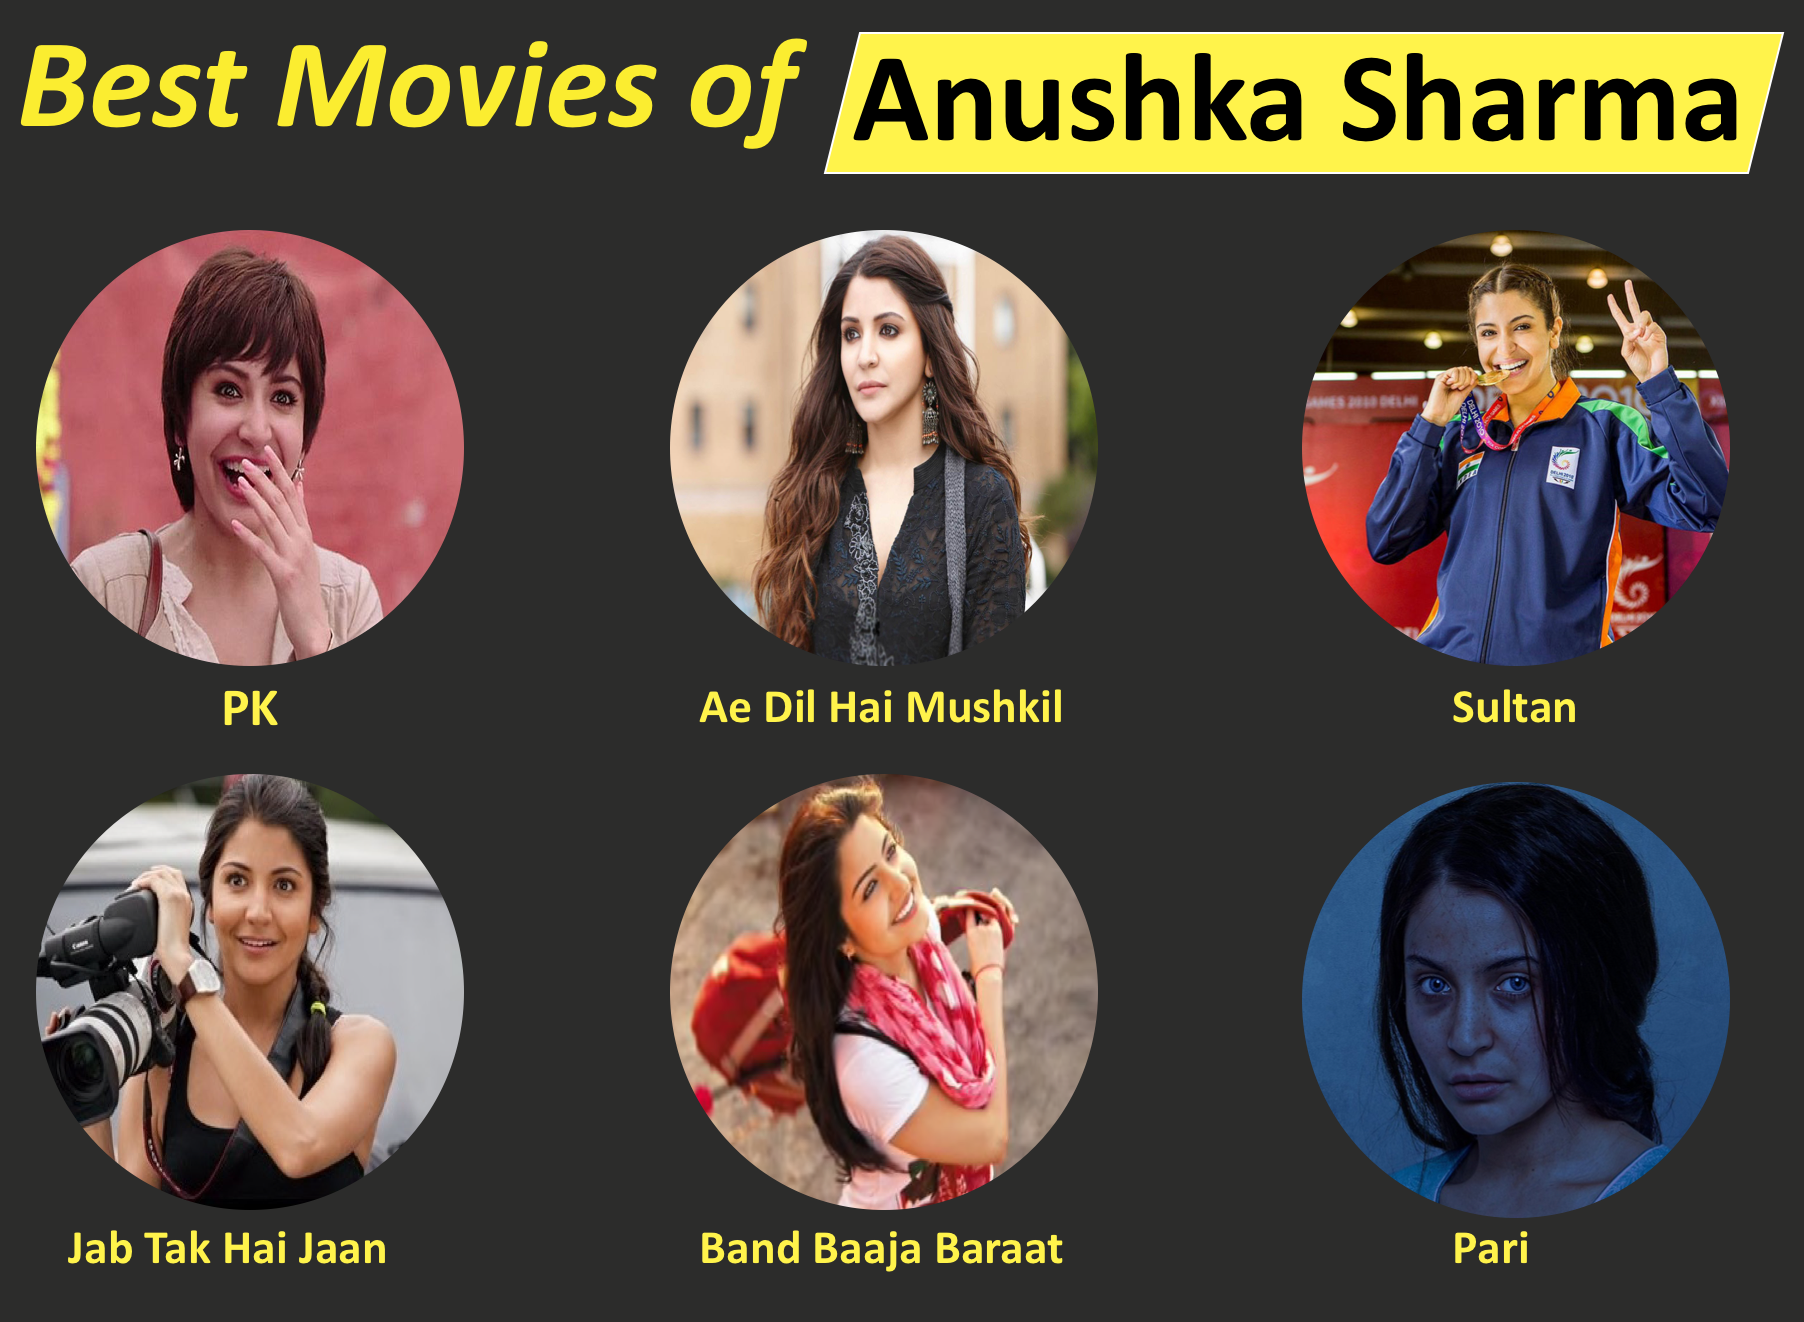 Birthday special: We take a look at Anushka Sharma's journey in Bollywood